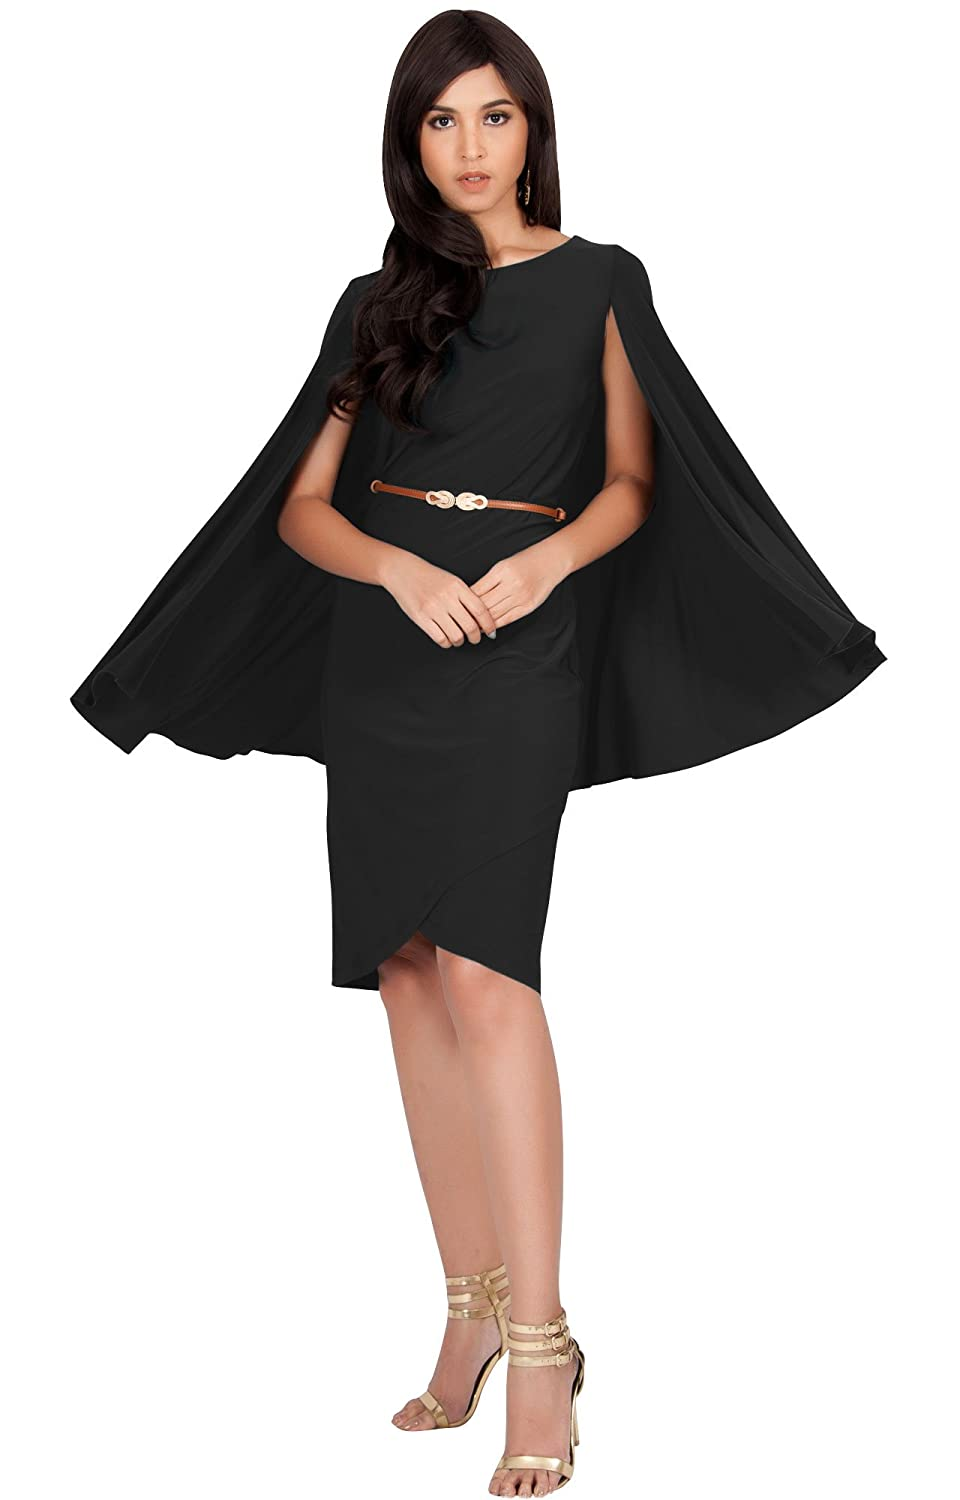 83ecc60f7 KOH KOH Womens Cape Long Sleeve Round Neck Cocktail with Leather Belt Mini  Dress at Amazon Women's Clothing store: